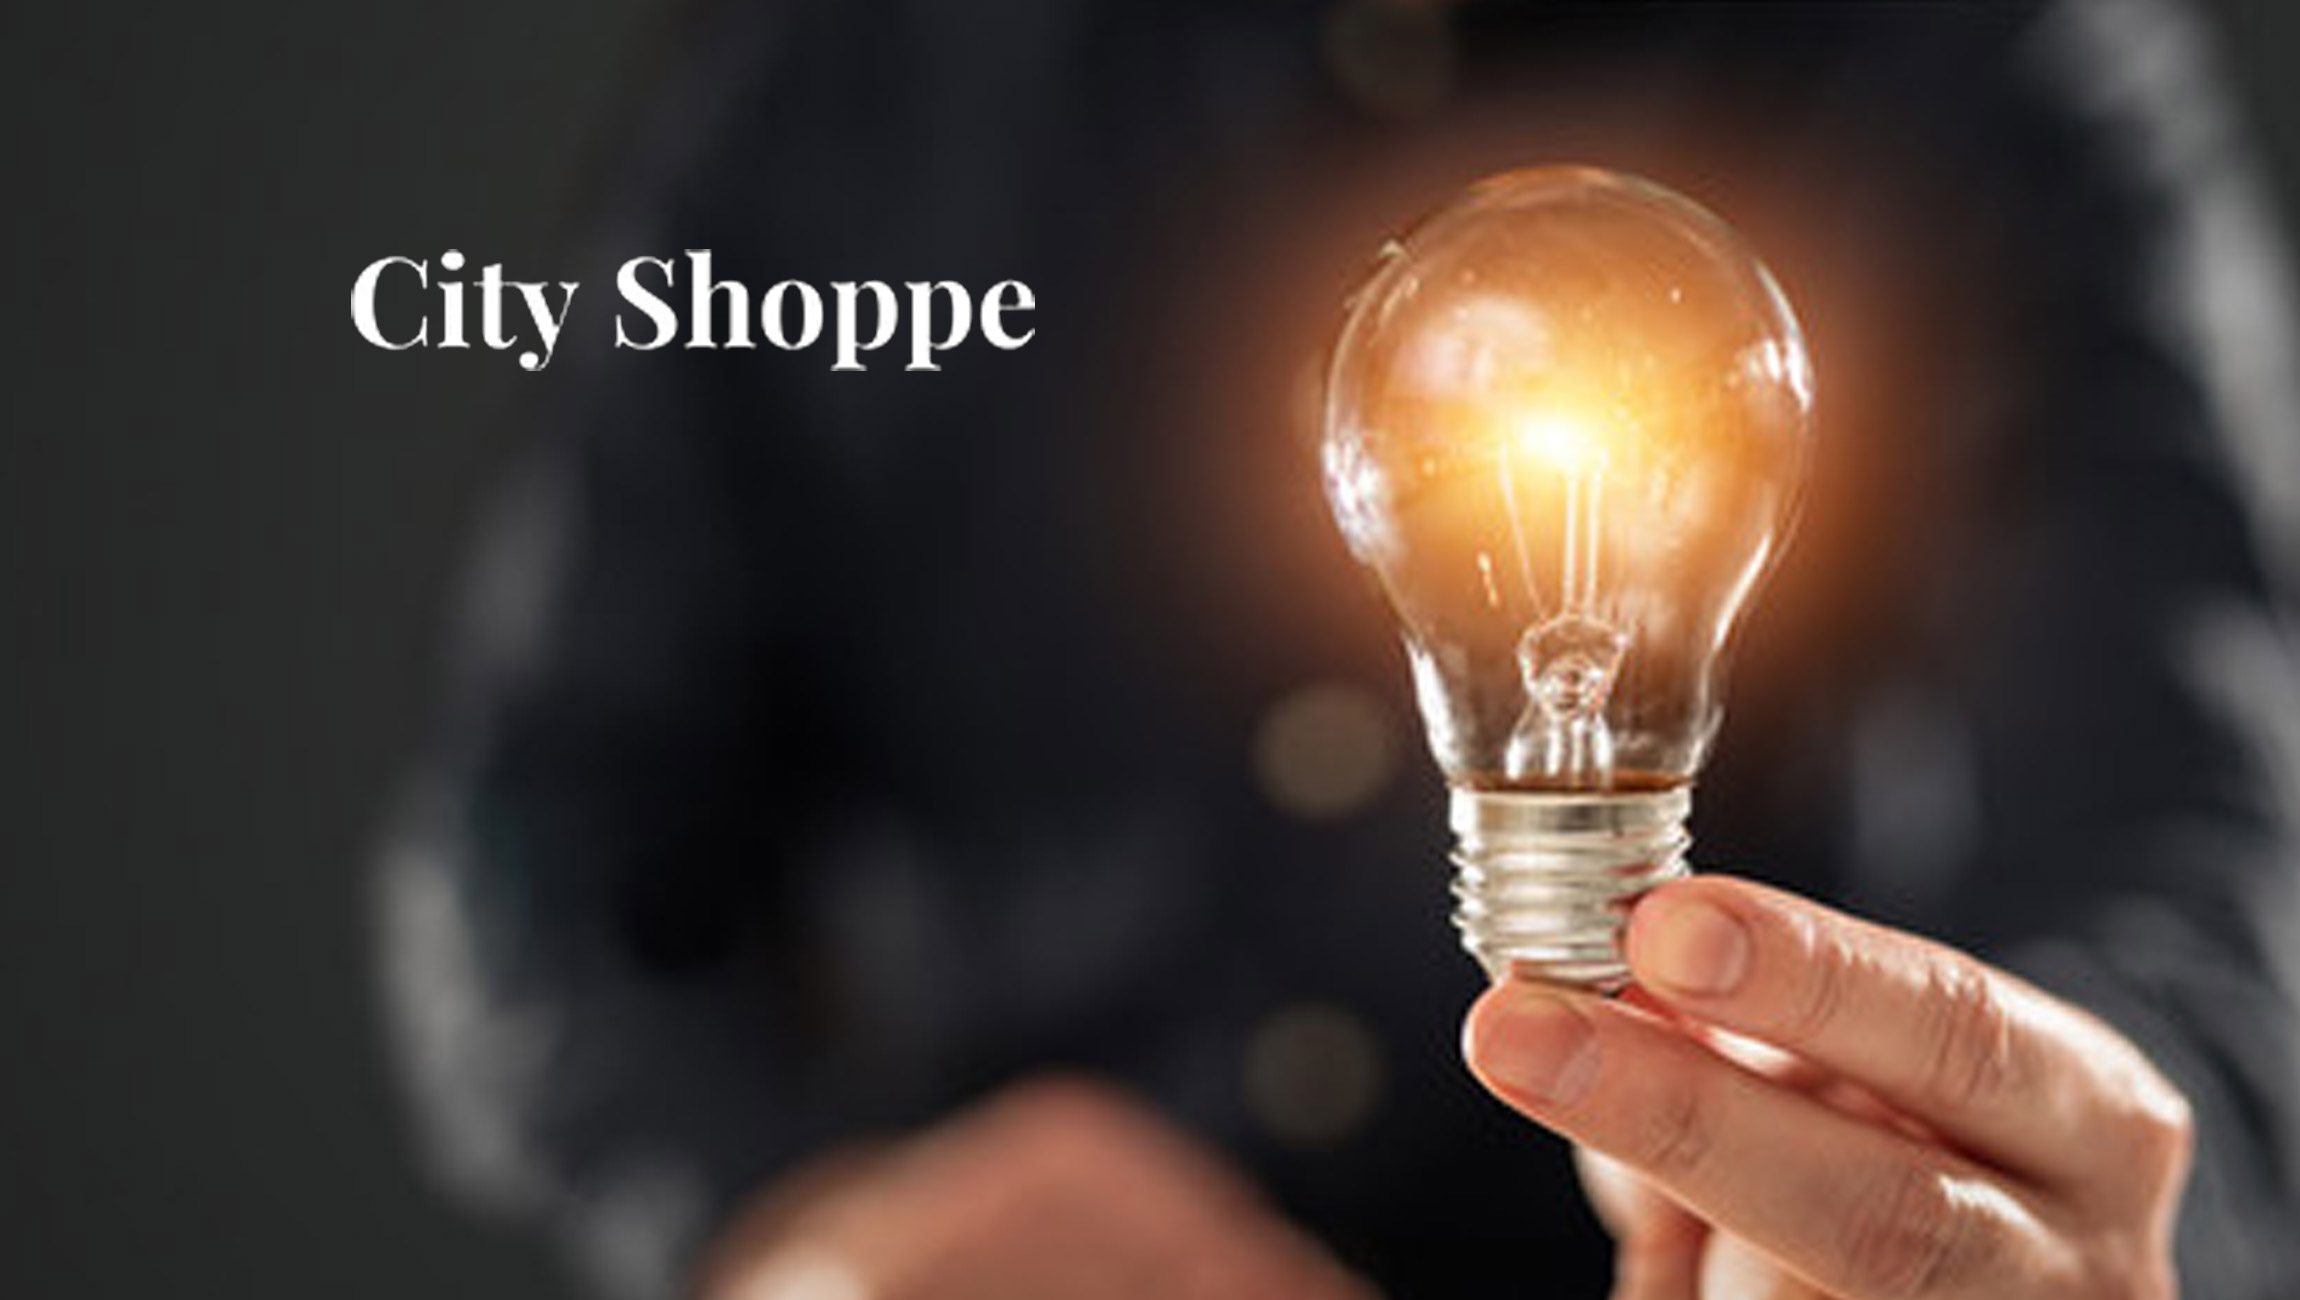 City-Shoppe_-the-Marketplace-for-Small-Businesses_-Expands-Services-in-Chicago